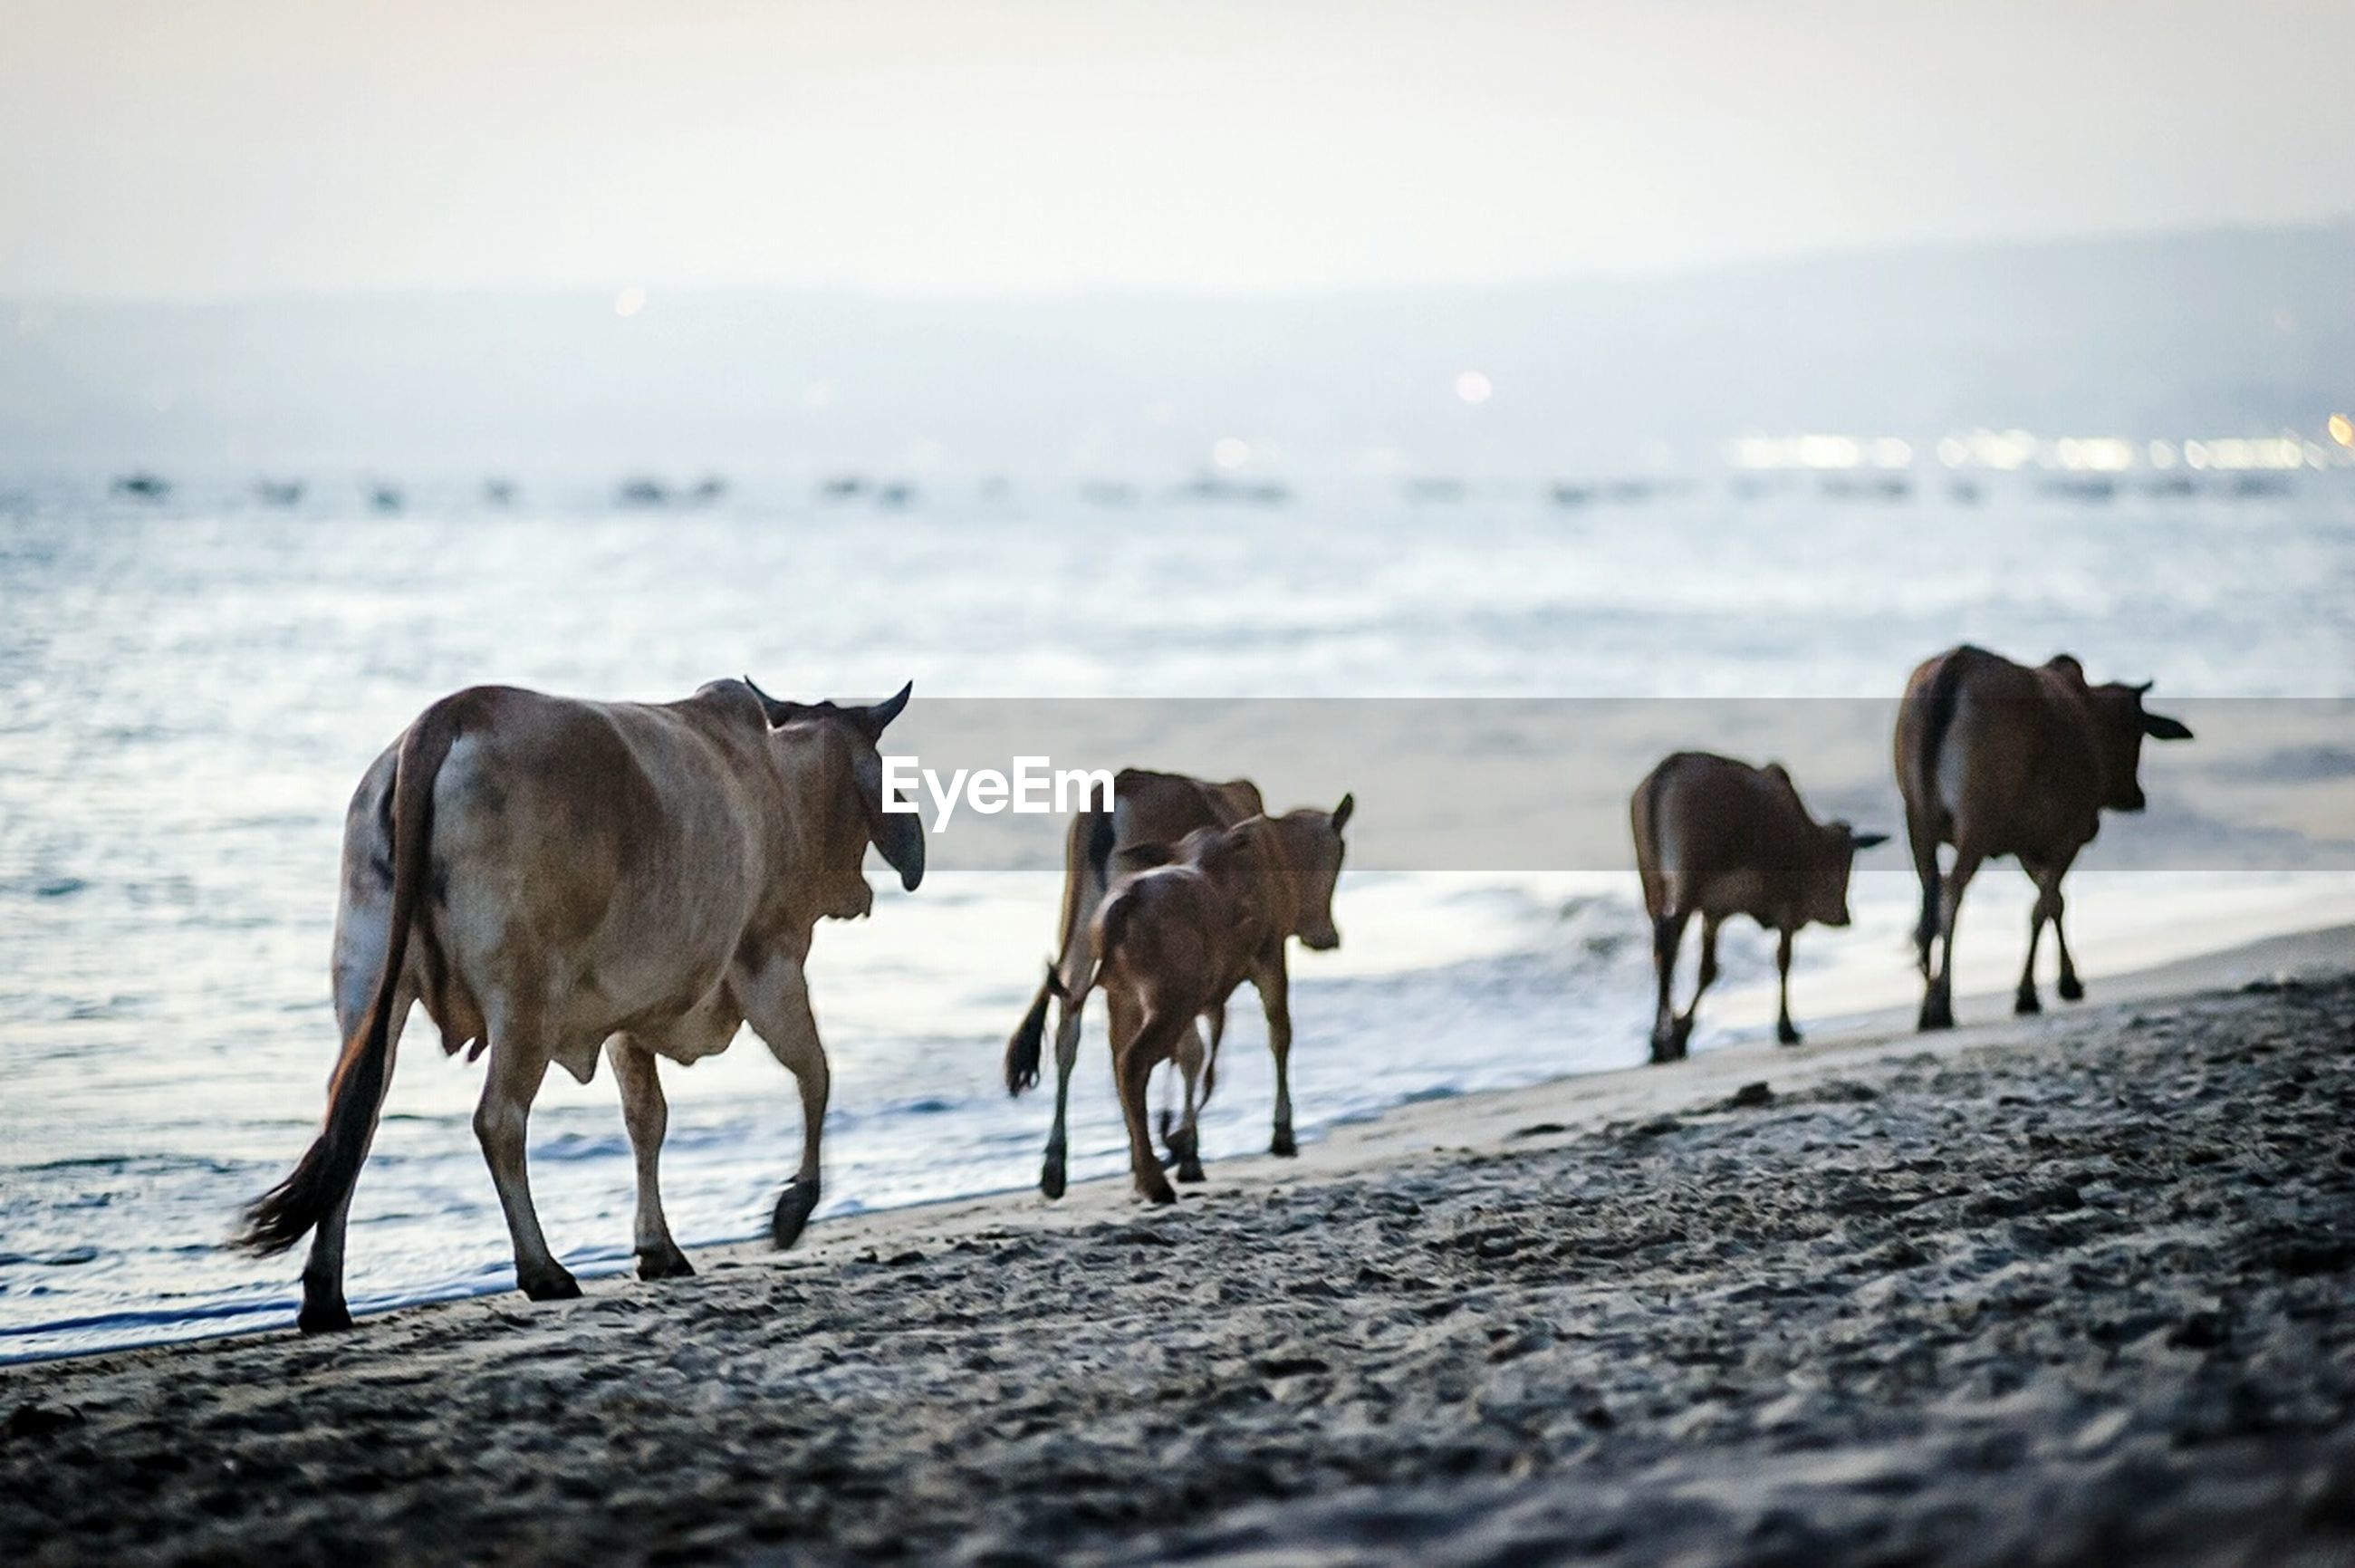 Cows walking at beach